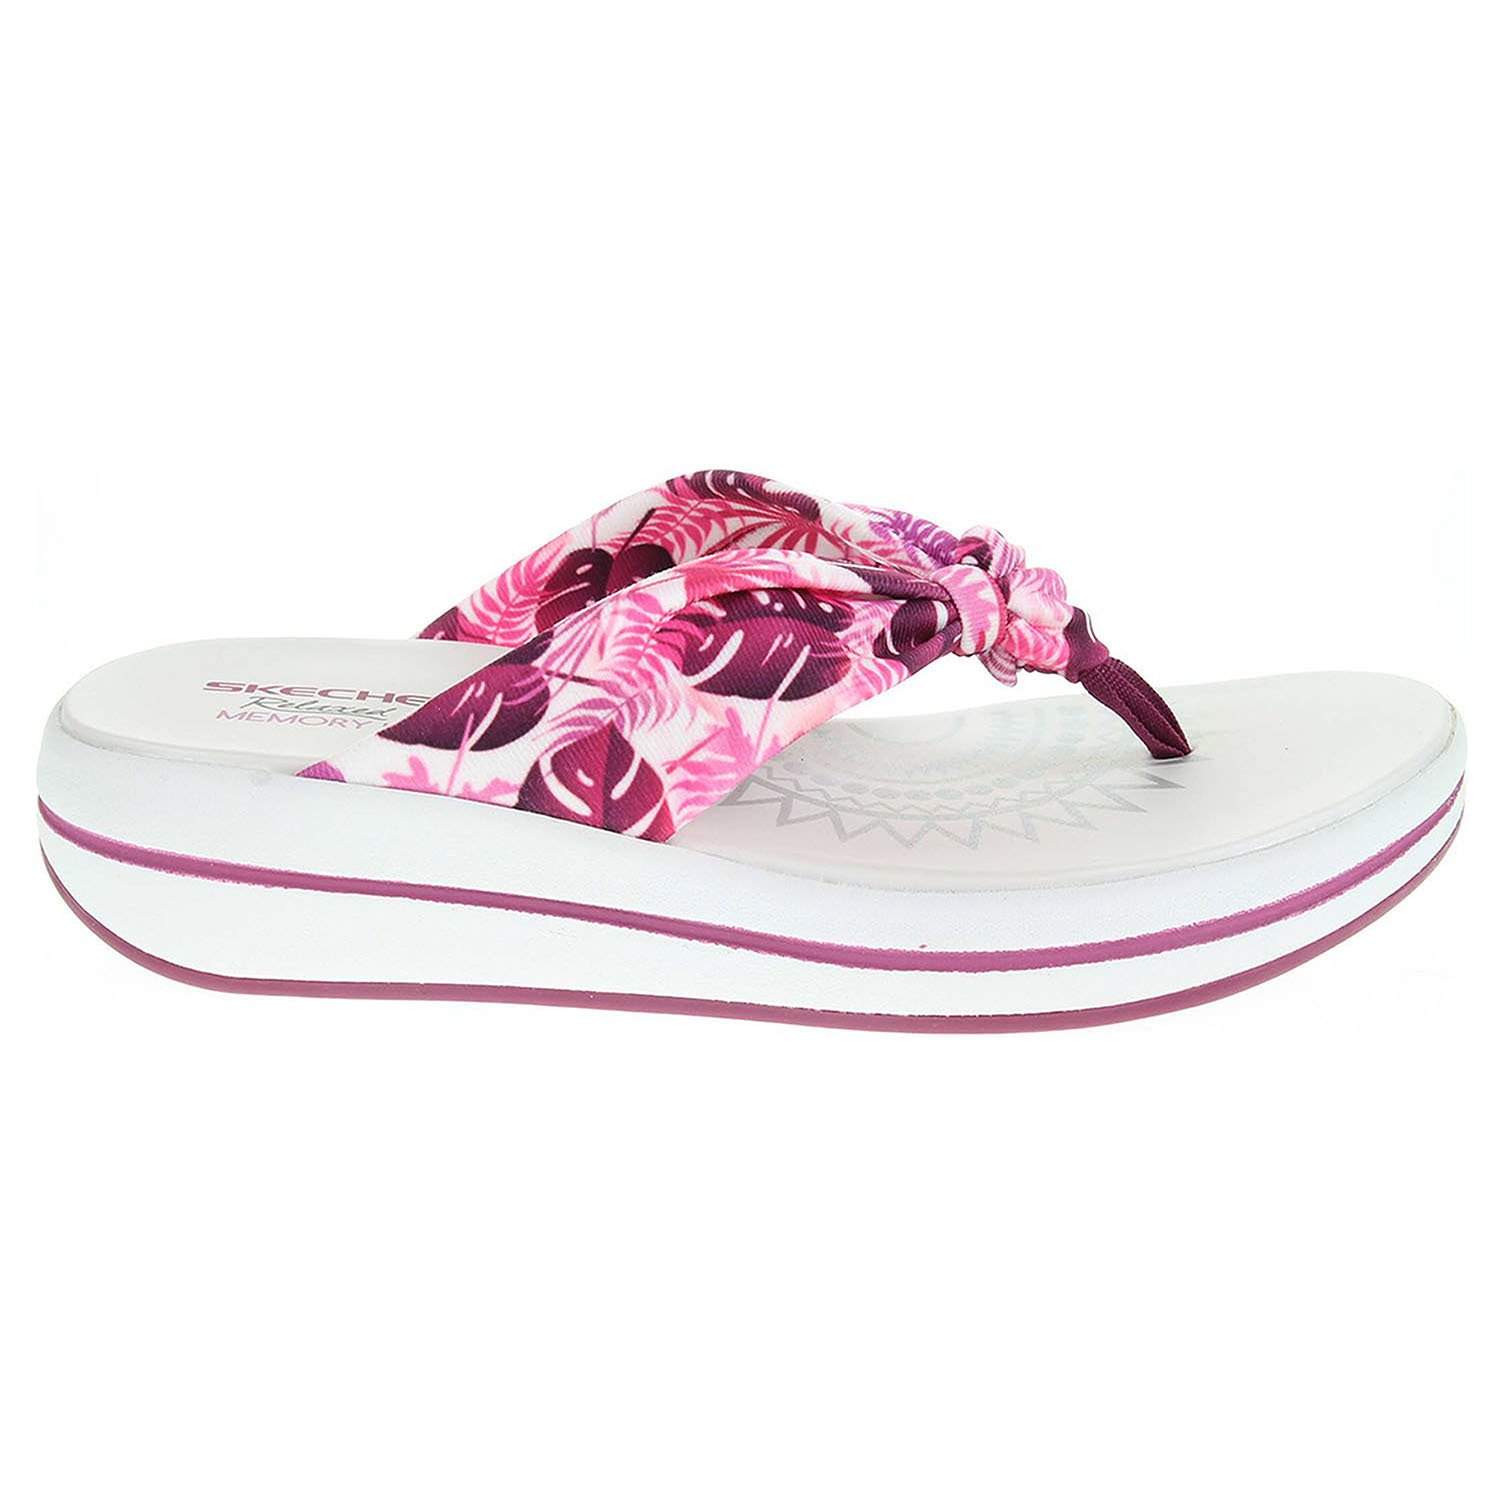 detail Skechers Upgrades - Pac Islands raspberry